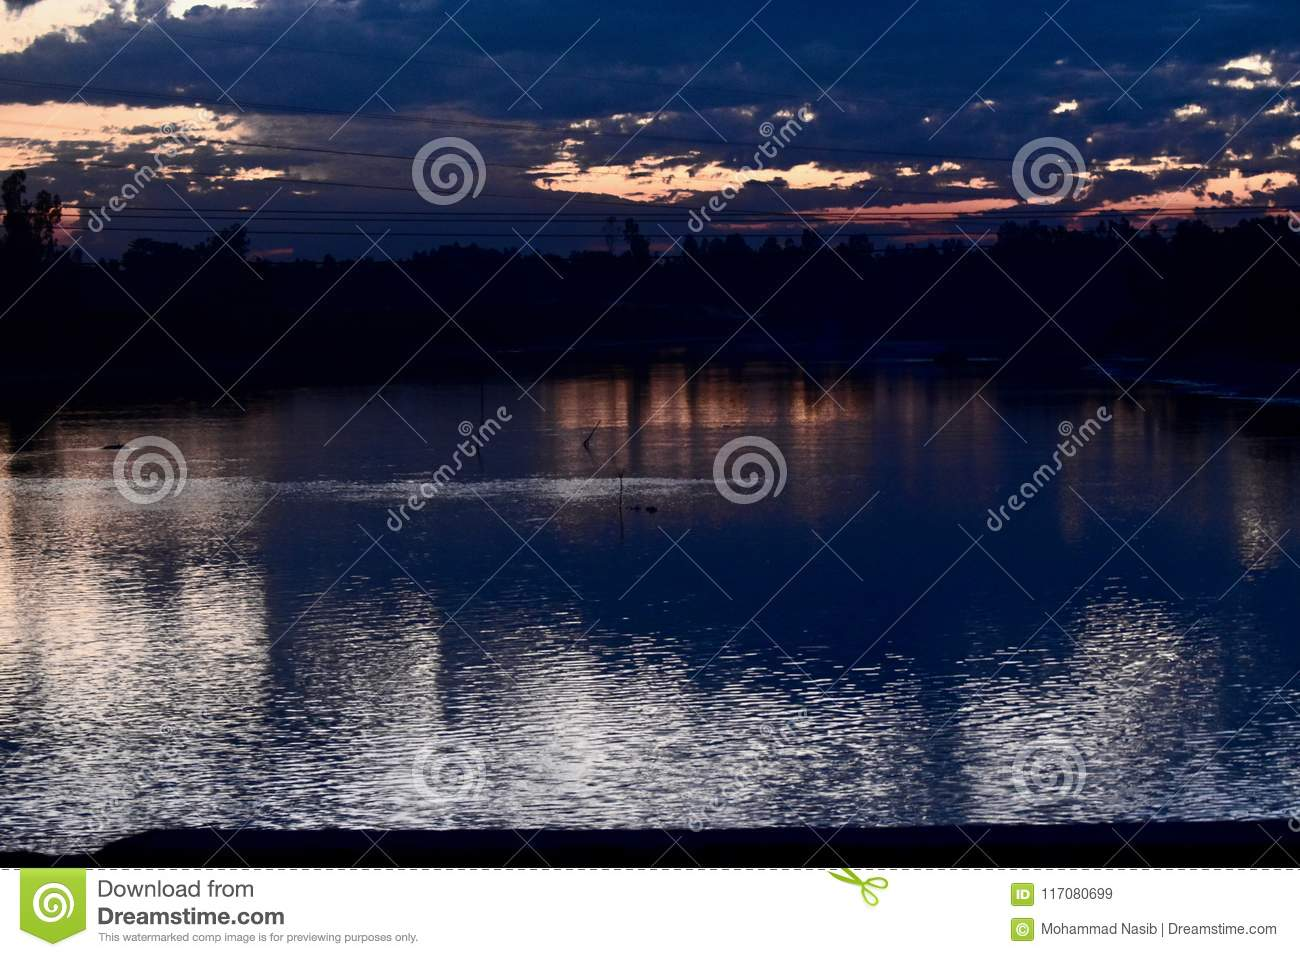 Download A Beautiful Evening Dramatic Sky With Reflection Unique Photo Stock Image - Image of cool, dark: 117080699